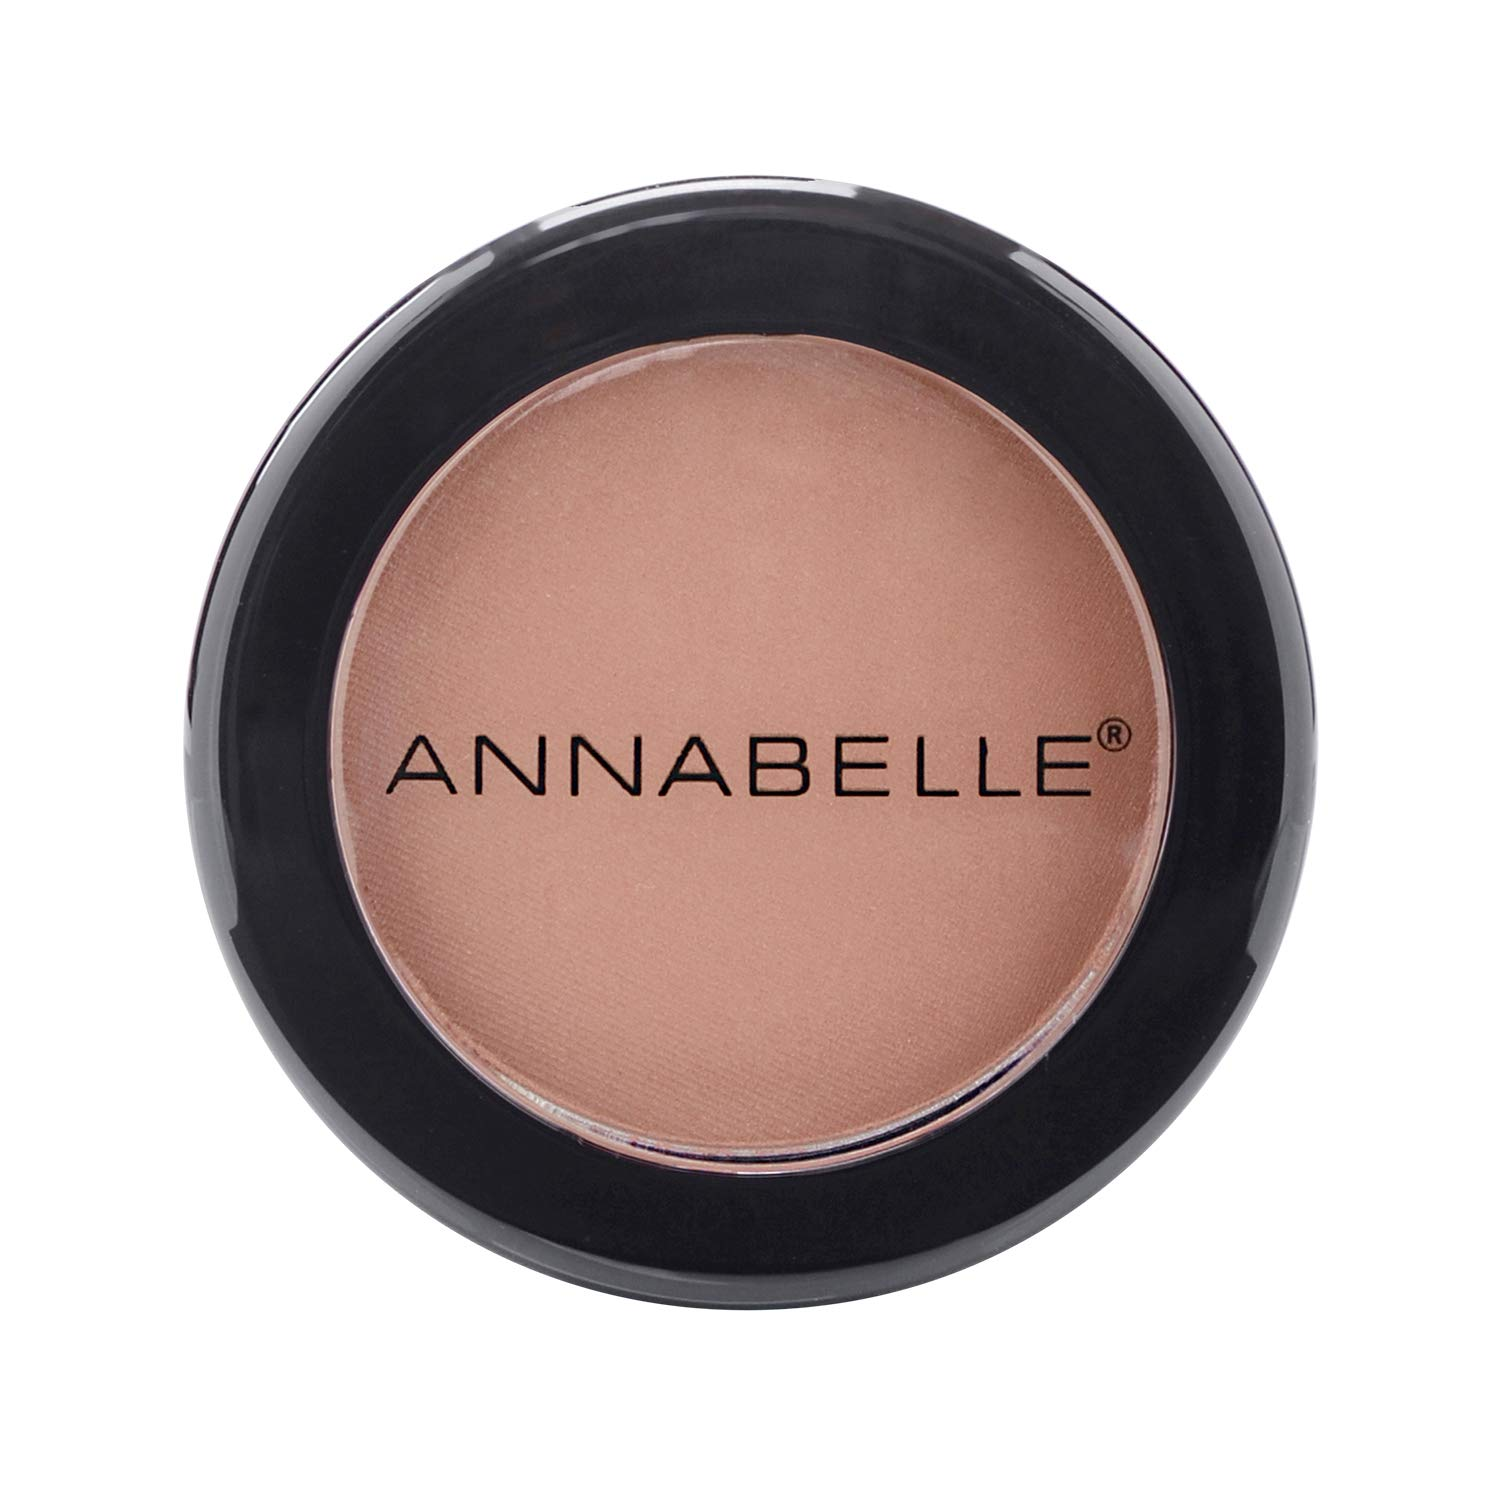 Annabelle Blush On - Spring Petal, 3 g Groupe Marcelle Inc.